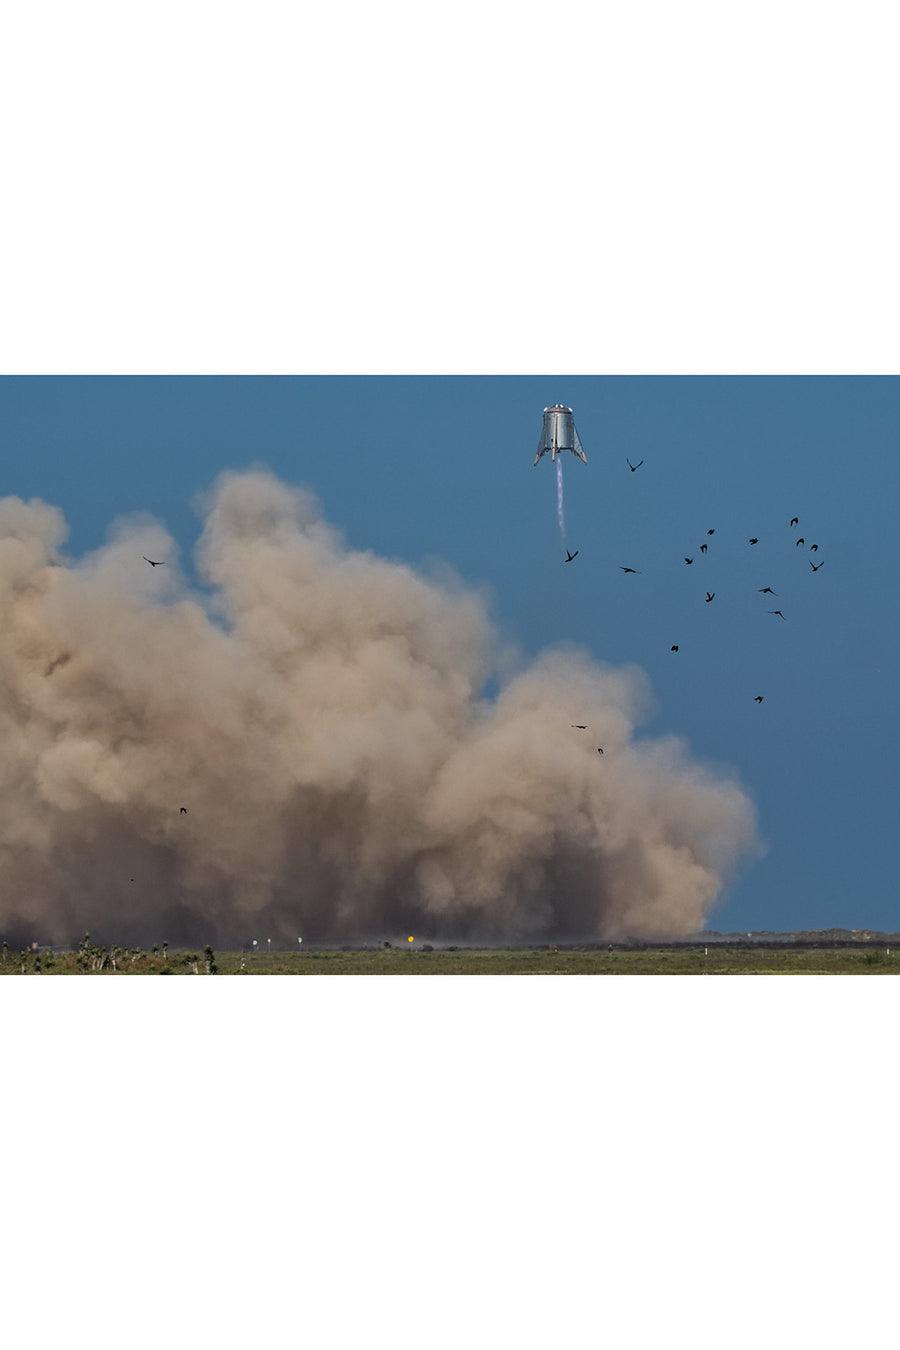 Starhopper and some birds